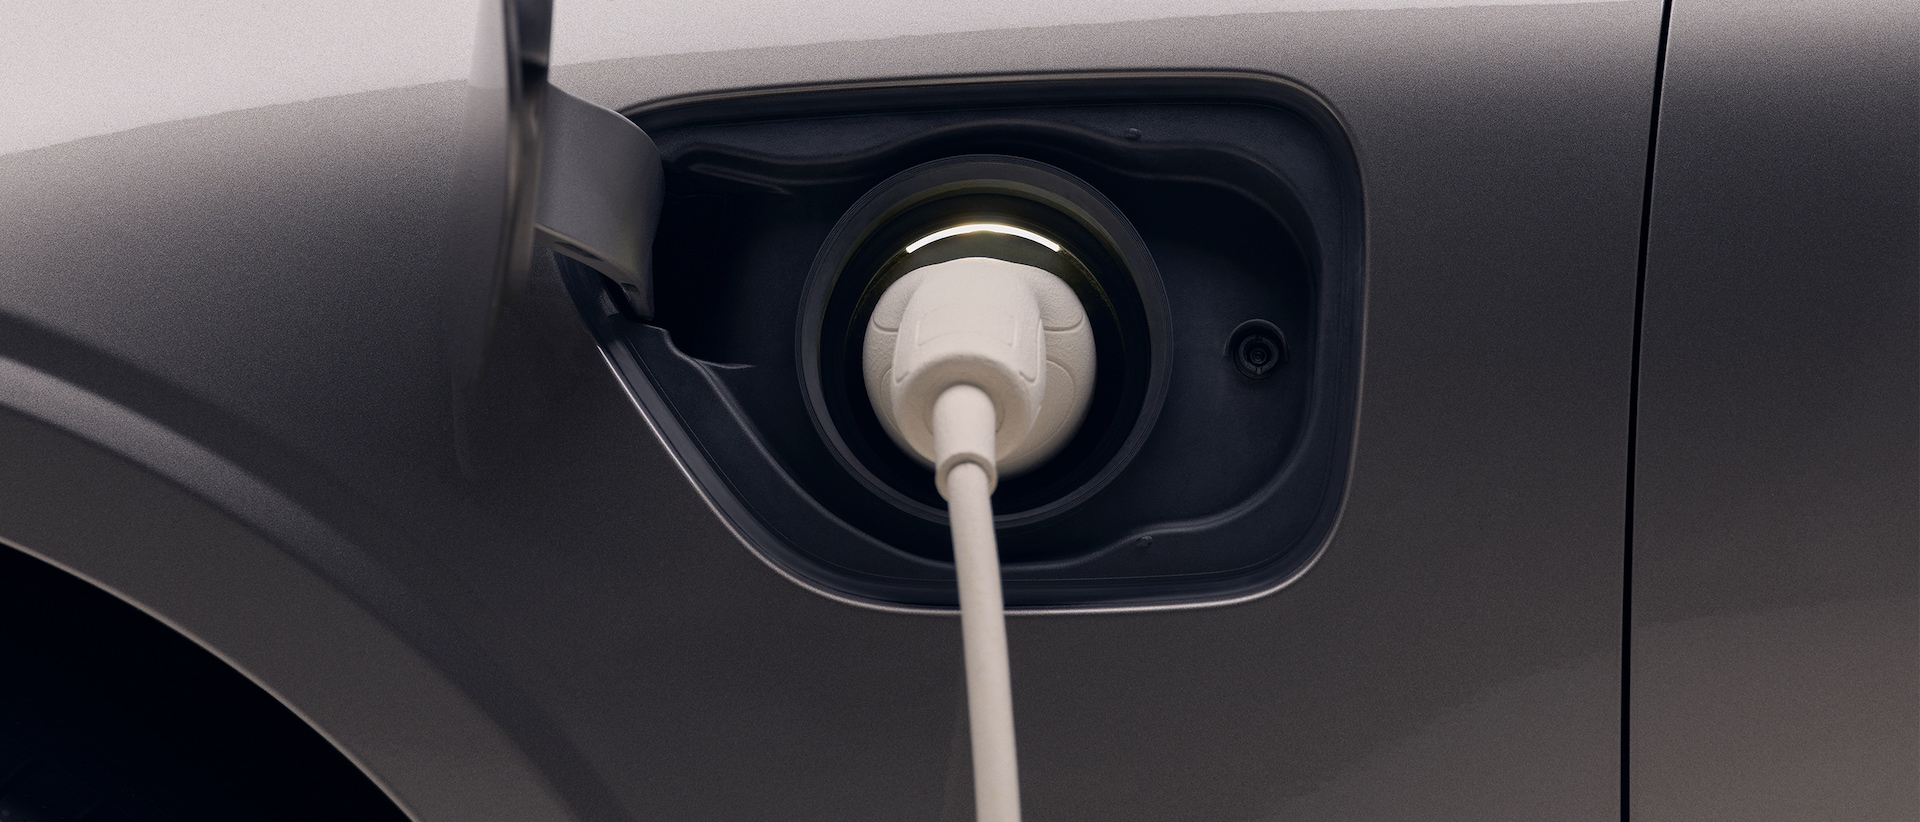 Closeup of the front left quarter of a new dark grey Volvo electric car, with a white charging cable plugged in to the car's charging port.